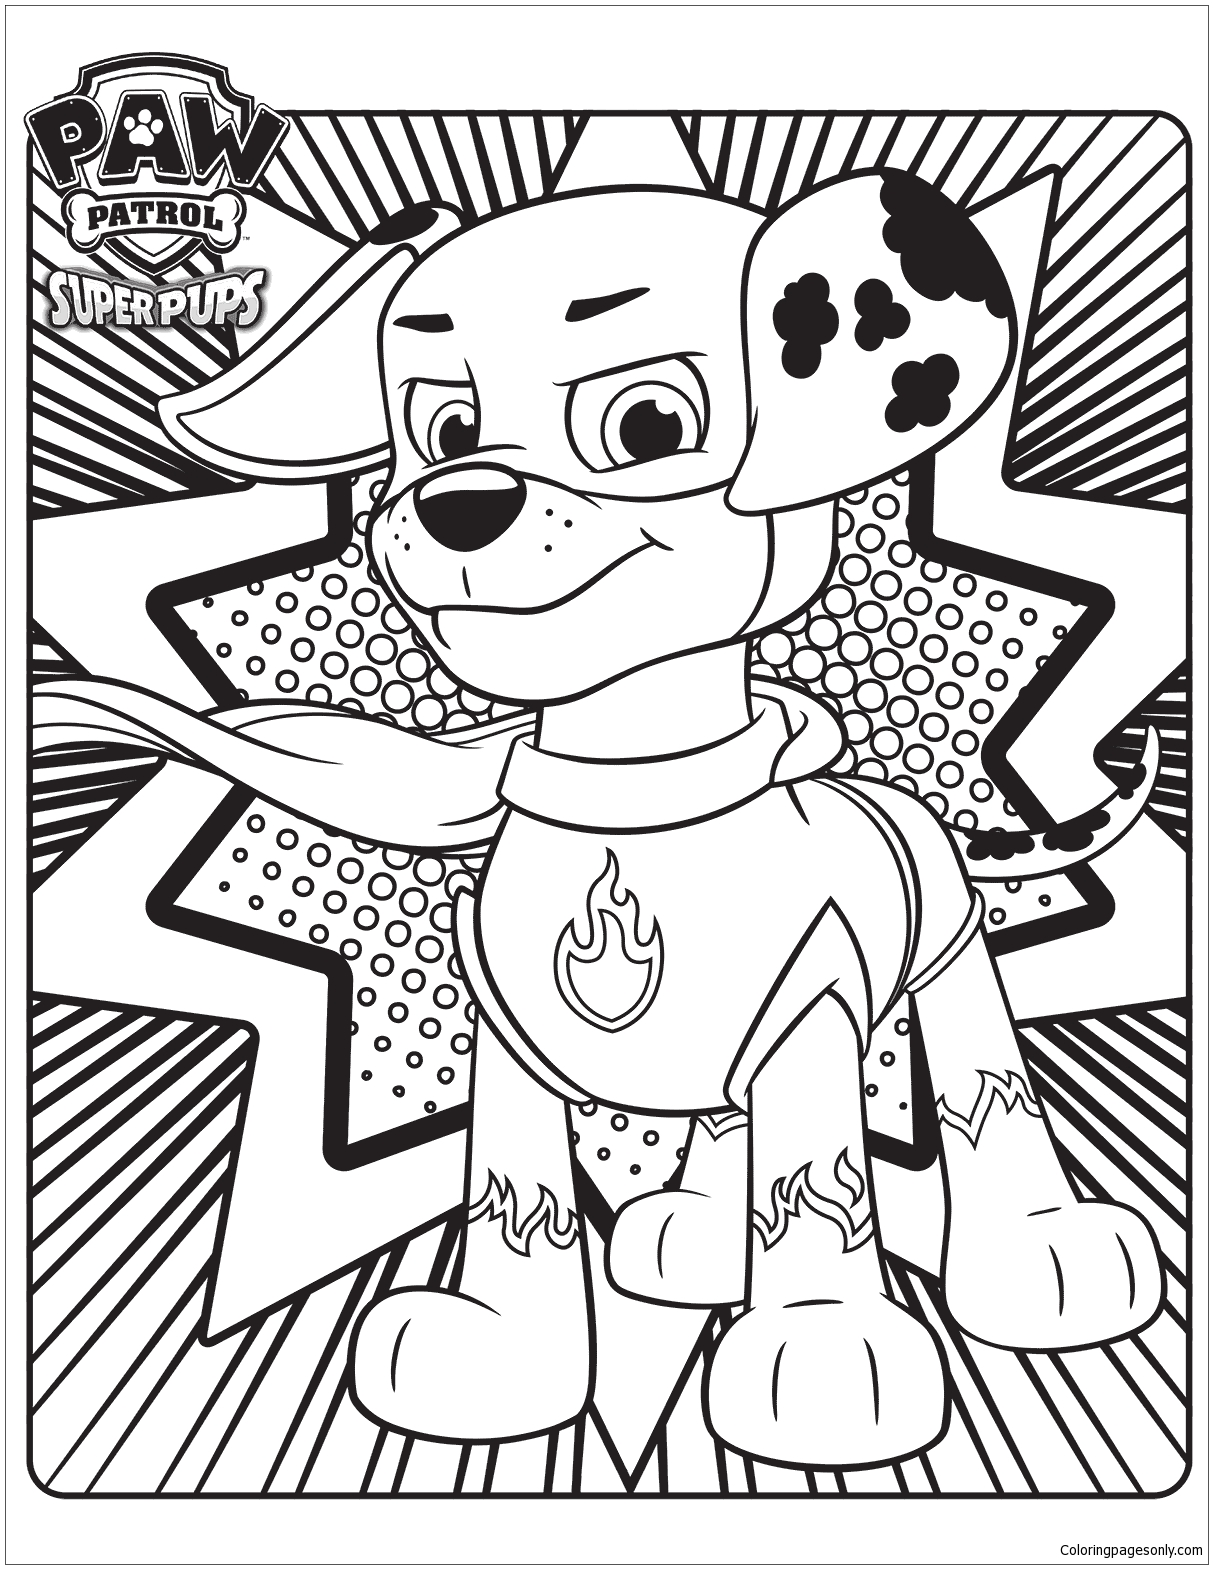 Paw Patrol Super Pups 3 Coloring Page Free Coloring Pages Online